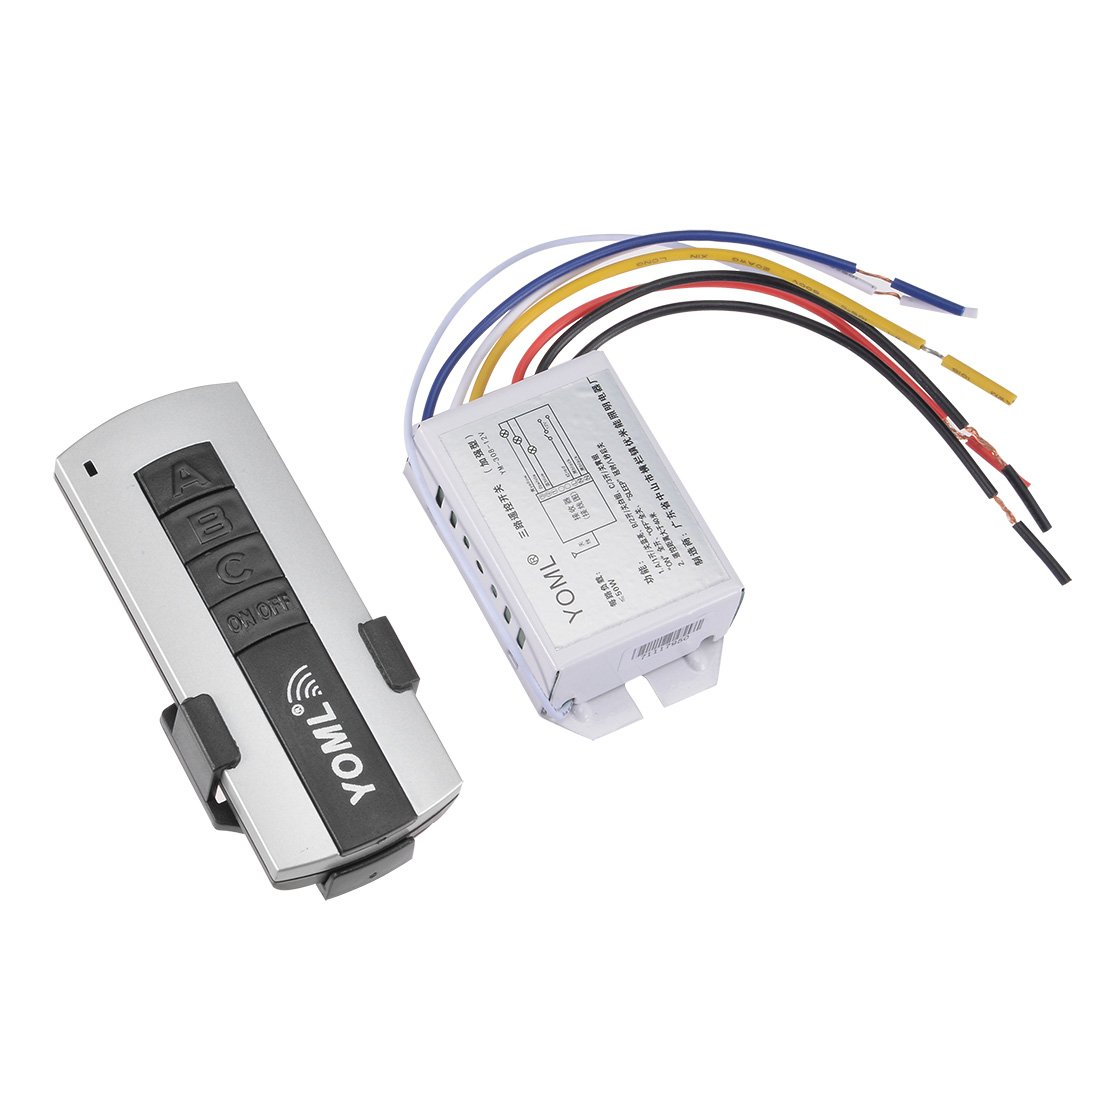 uxcell DC 12V 3 Channel RF Relay Wireless Digital Remote Control Switch 315MHZ Transmitter with Receiver for All Lights